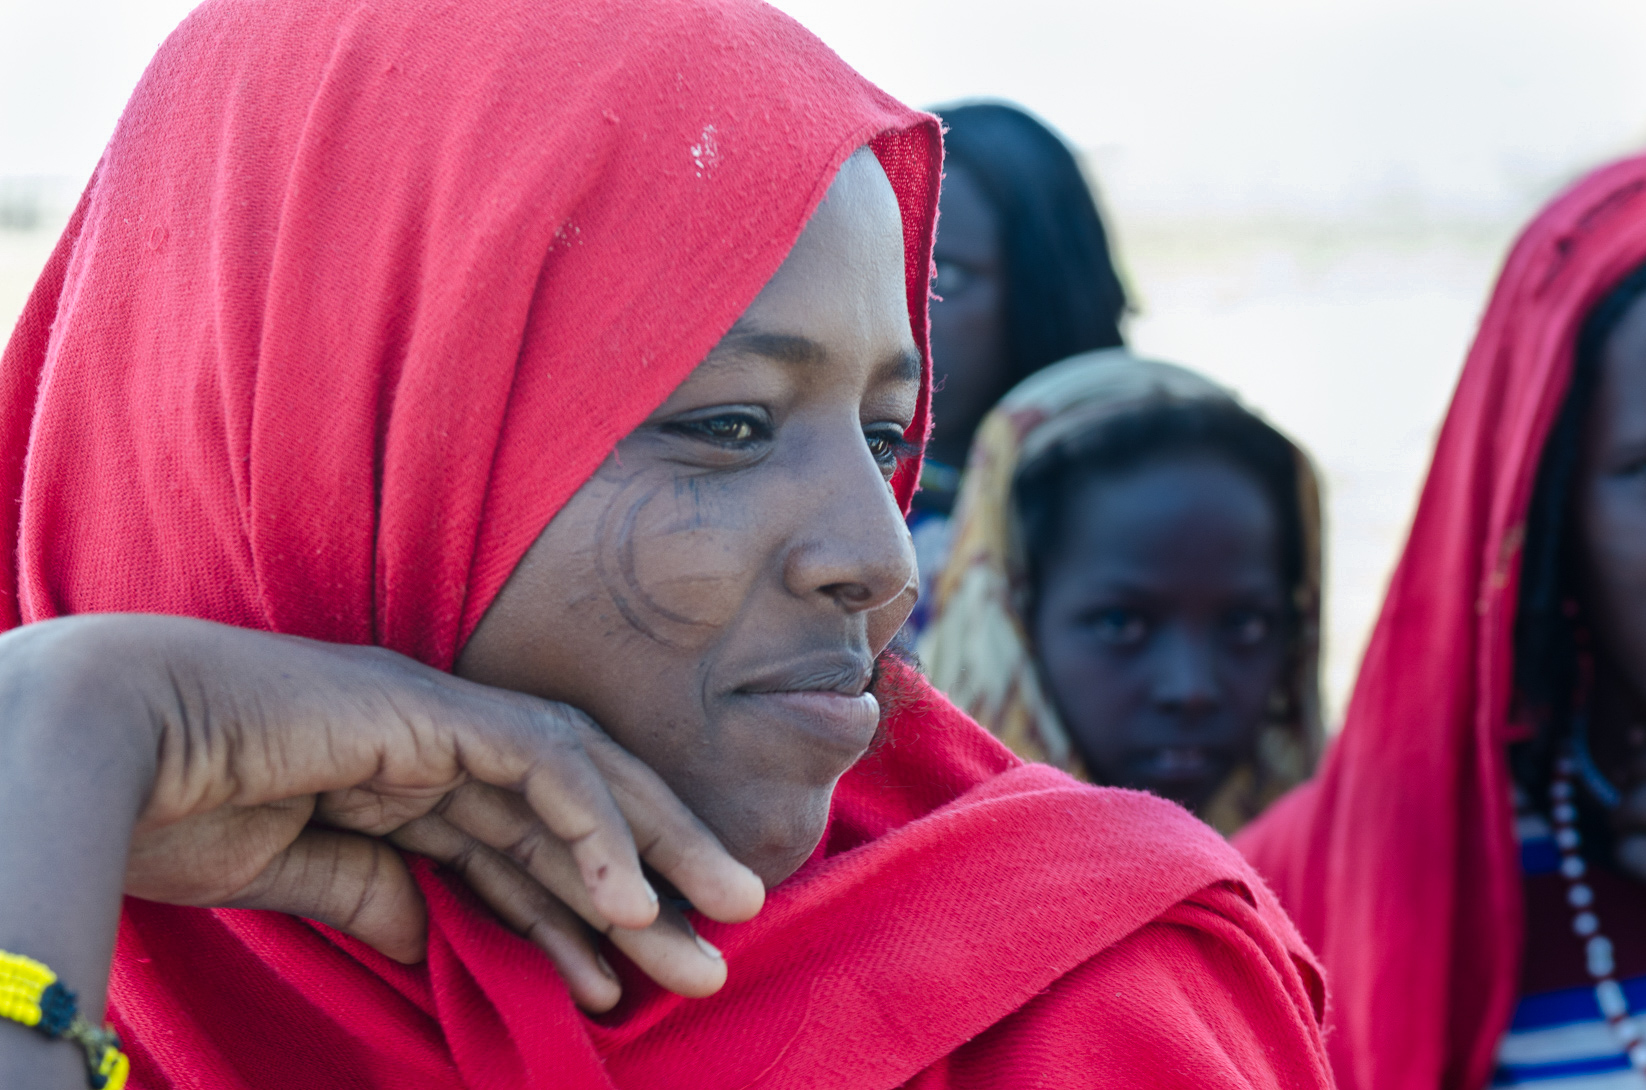 Hawa was not cut when she was a girl after learning the long-lasting consequences of FGM. Through lessons with her family and community she is helping to bring an end to FGM